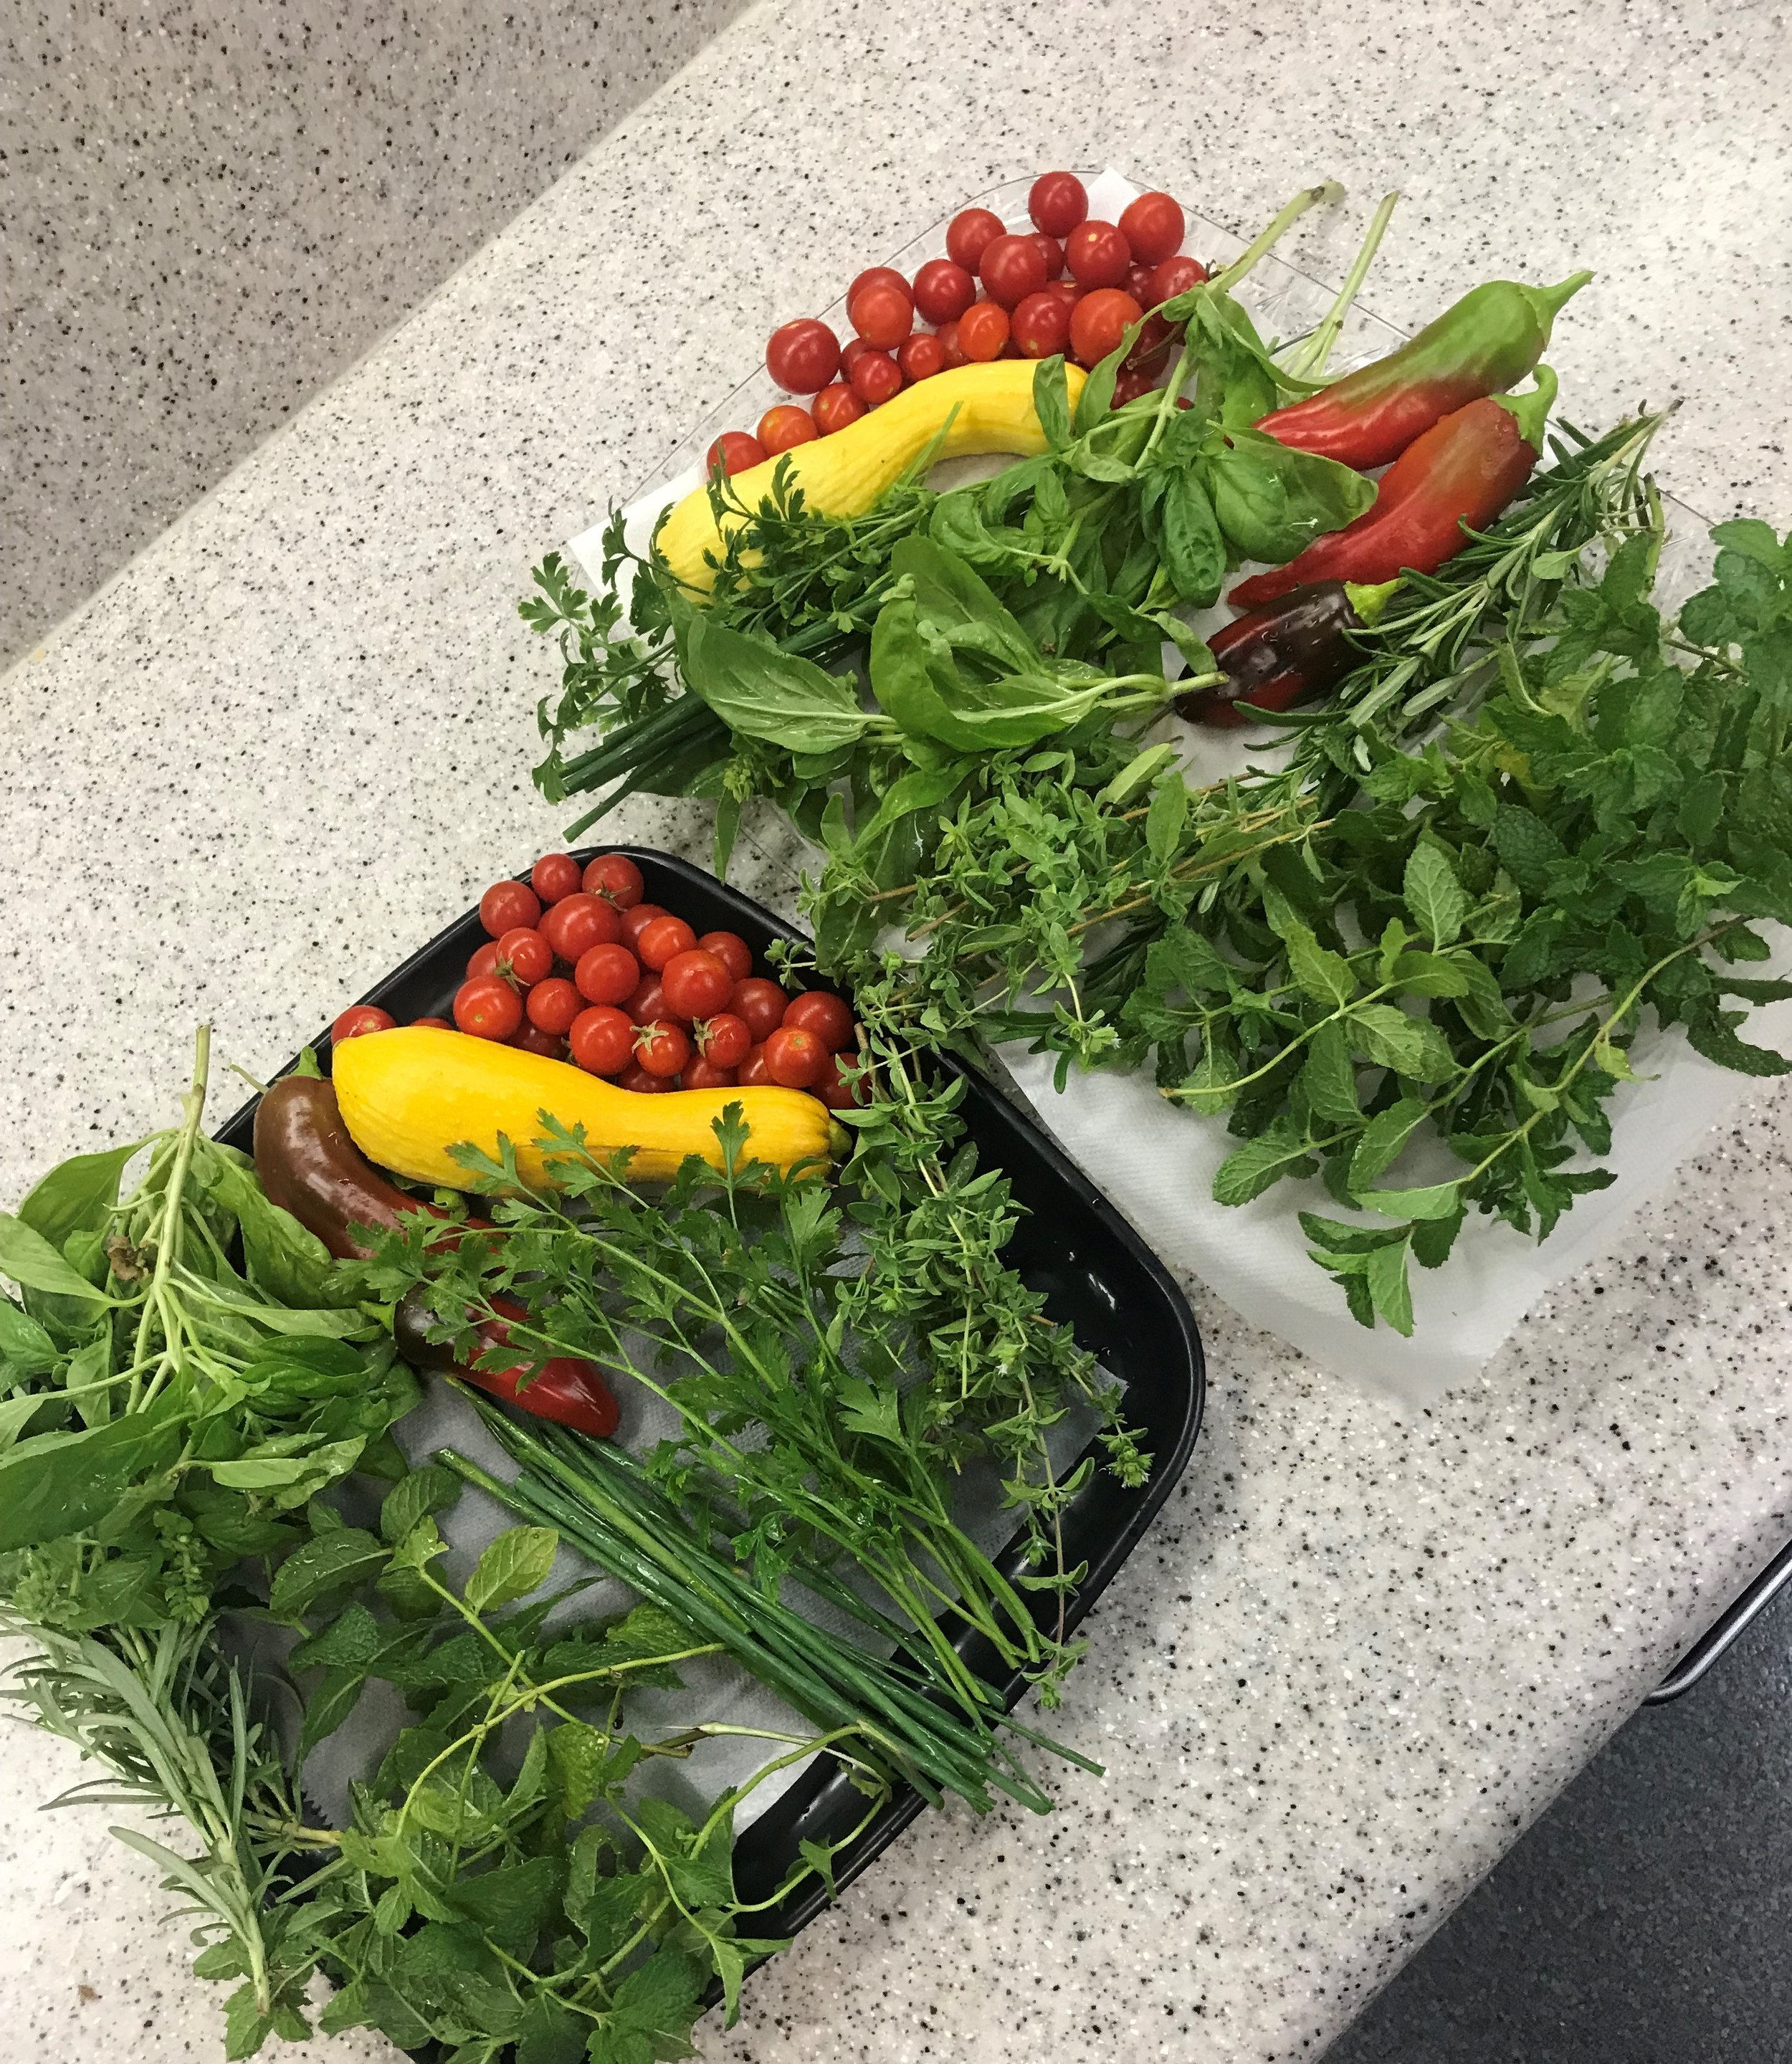 Melissa Keane, Epidemiology and Immunization Services, grows squash, tomatoes, peppers and herbs